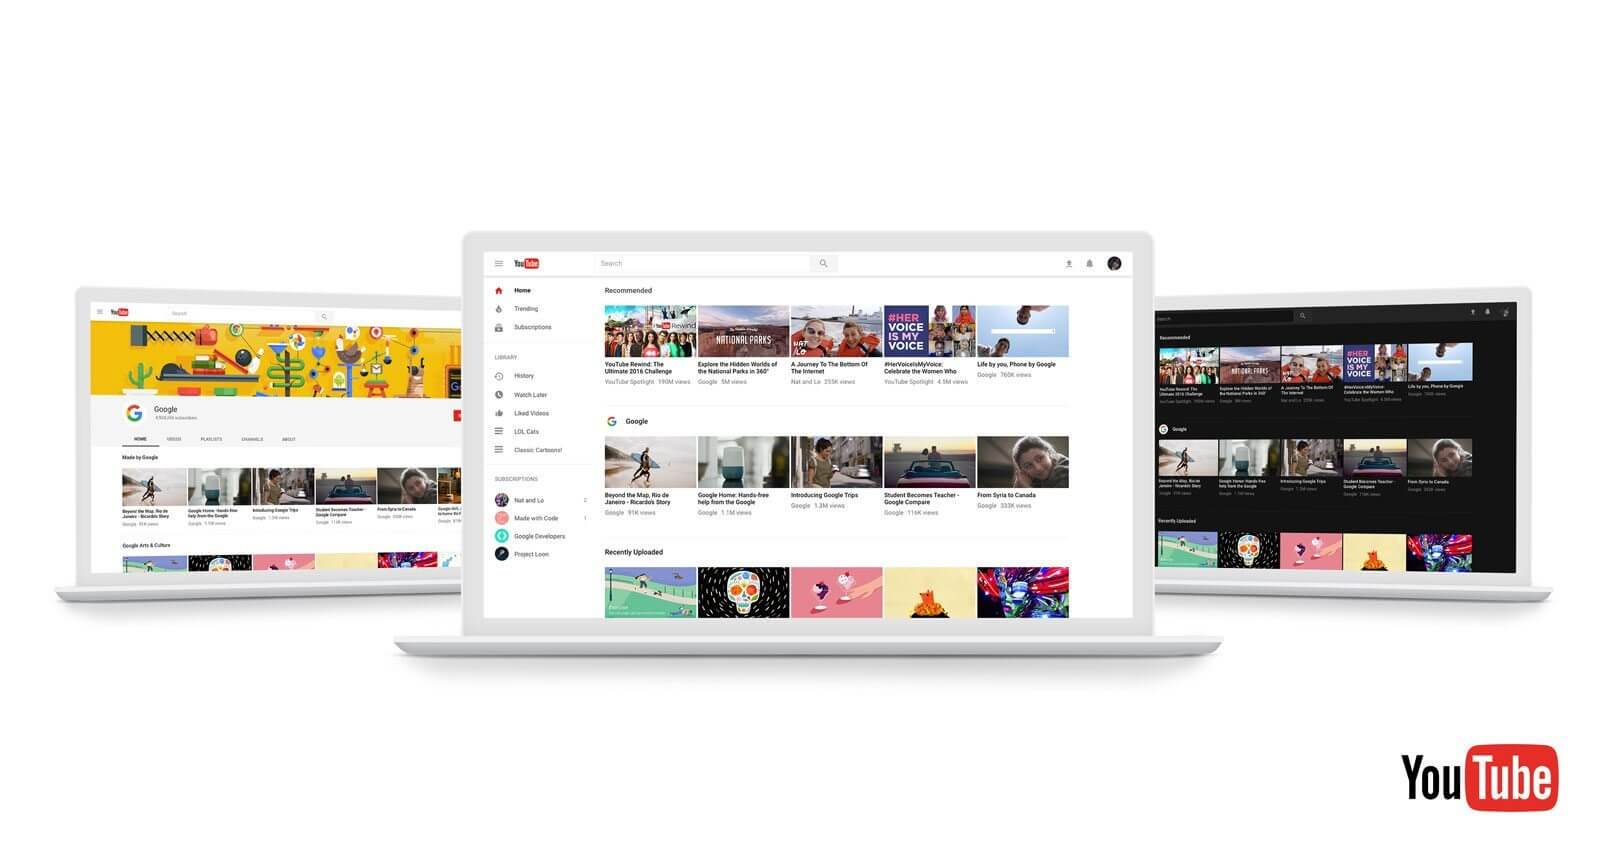 youtube ed - YouTube anuncia modo escuro e redesign do site